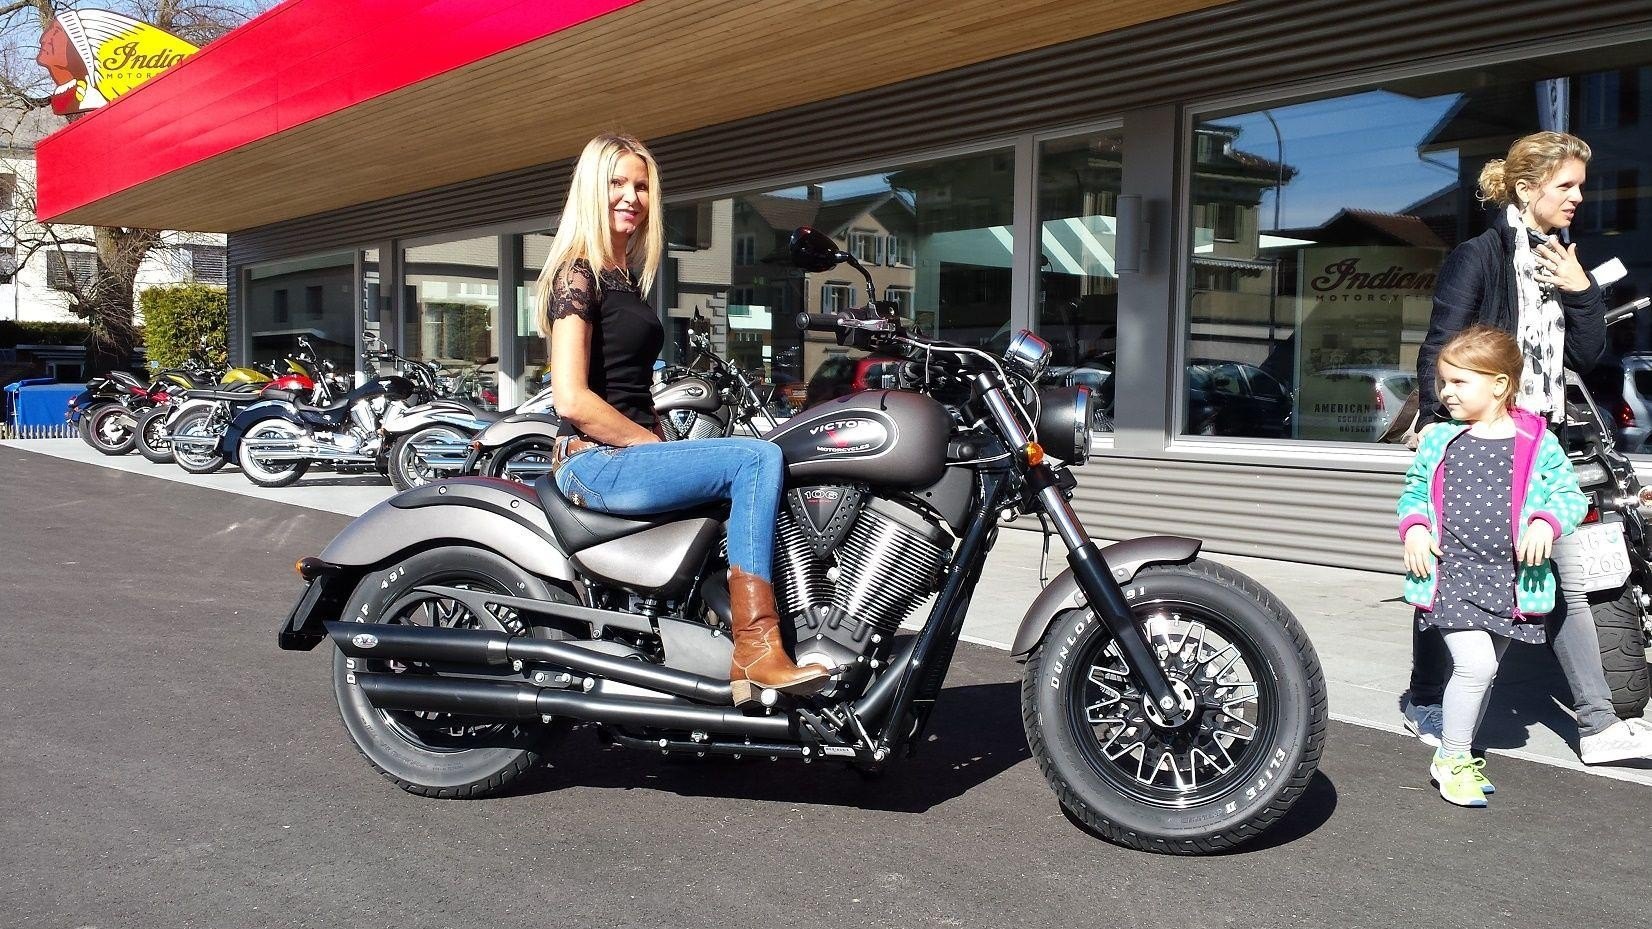 moto neuve acheter indian scout abs 5 jahre garantie american bikes ag b tschwil. Black Bedroom Furniture Sets. Home Design Ideas